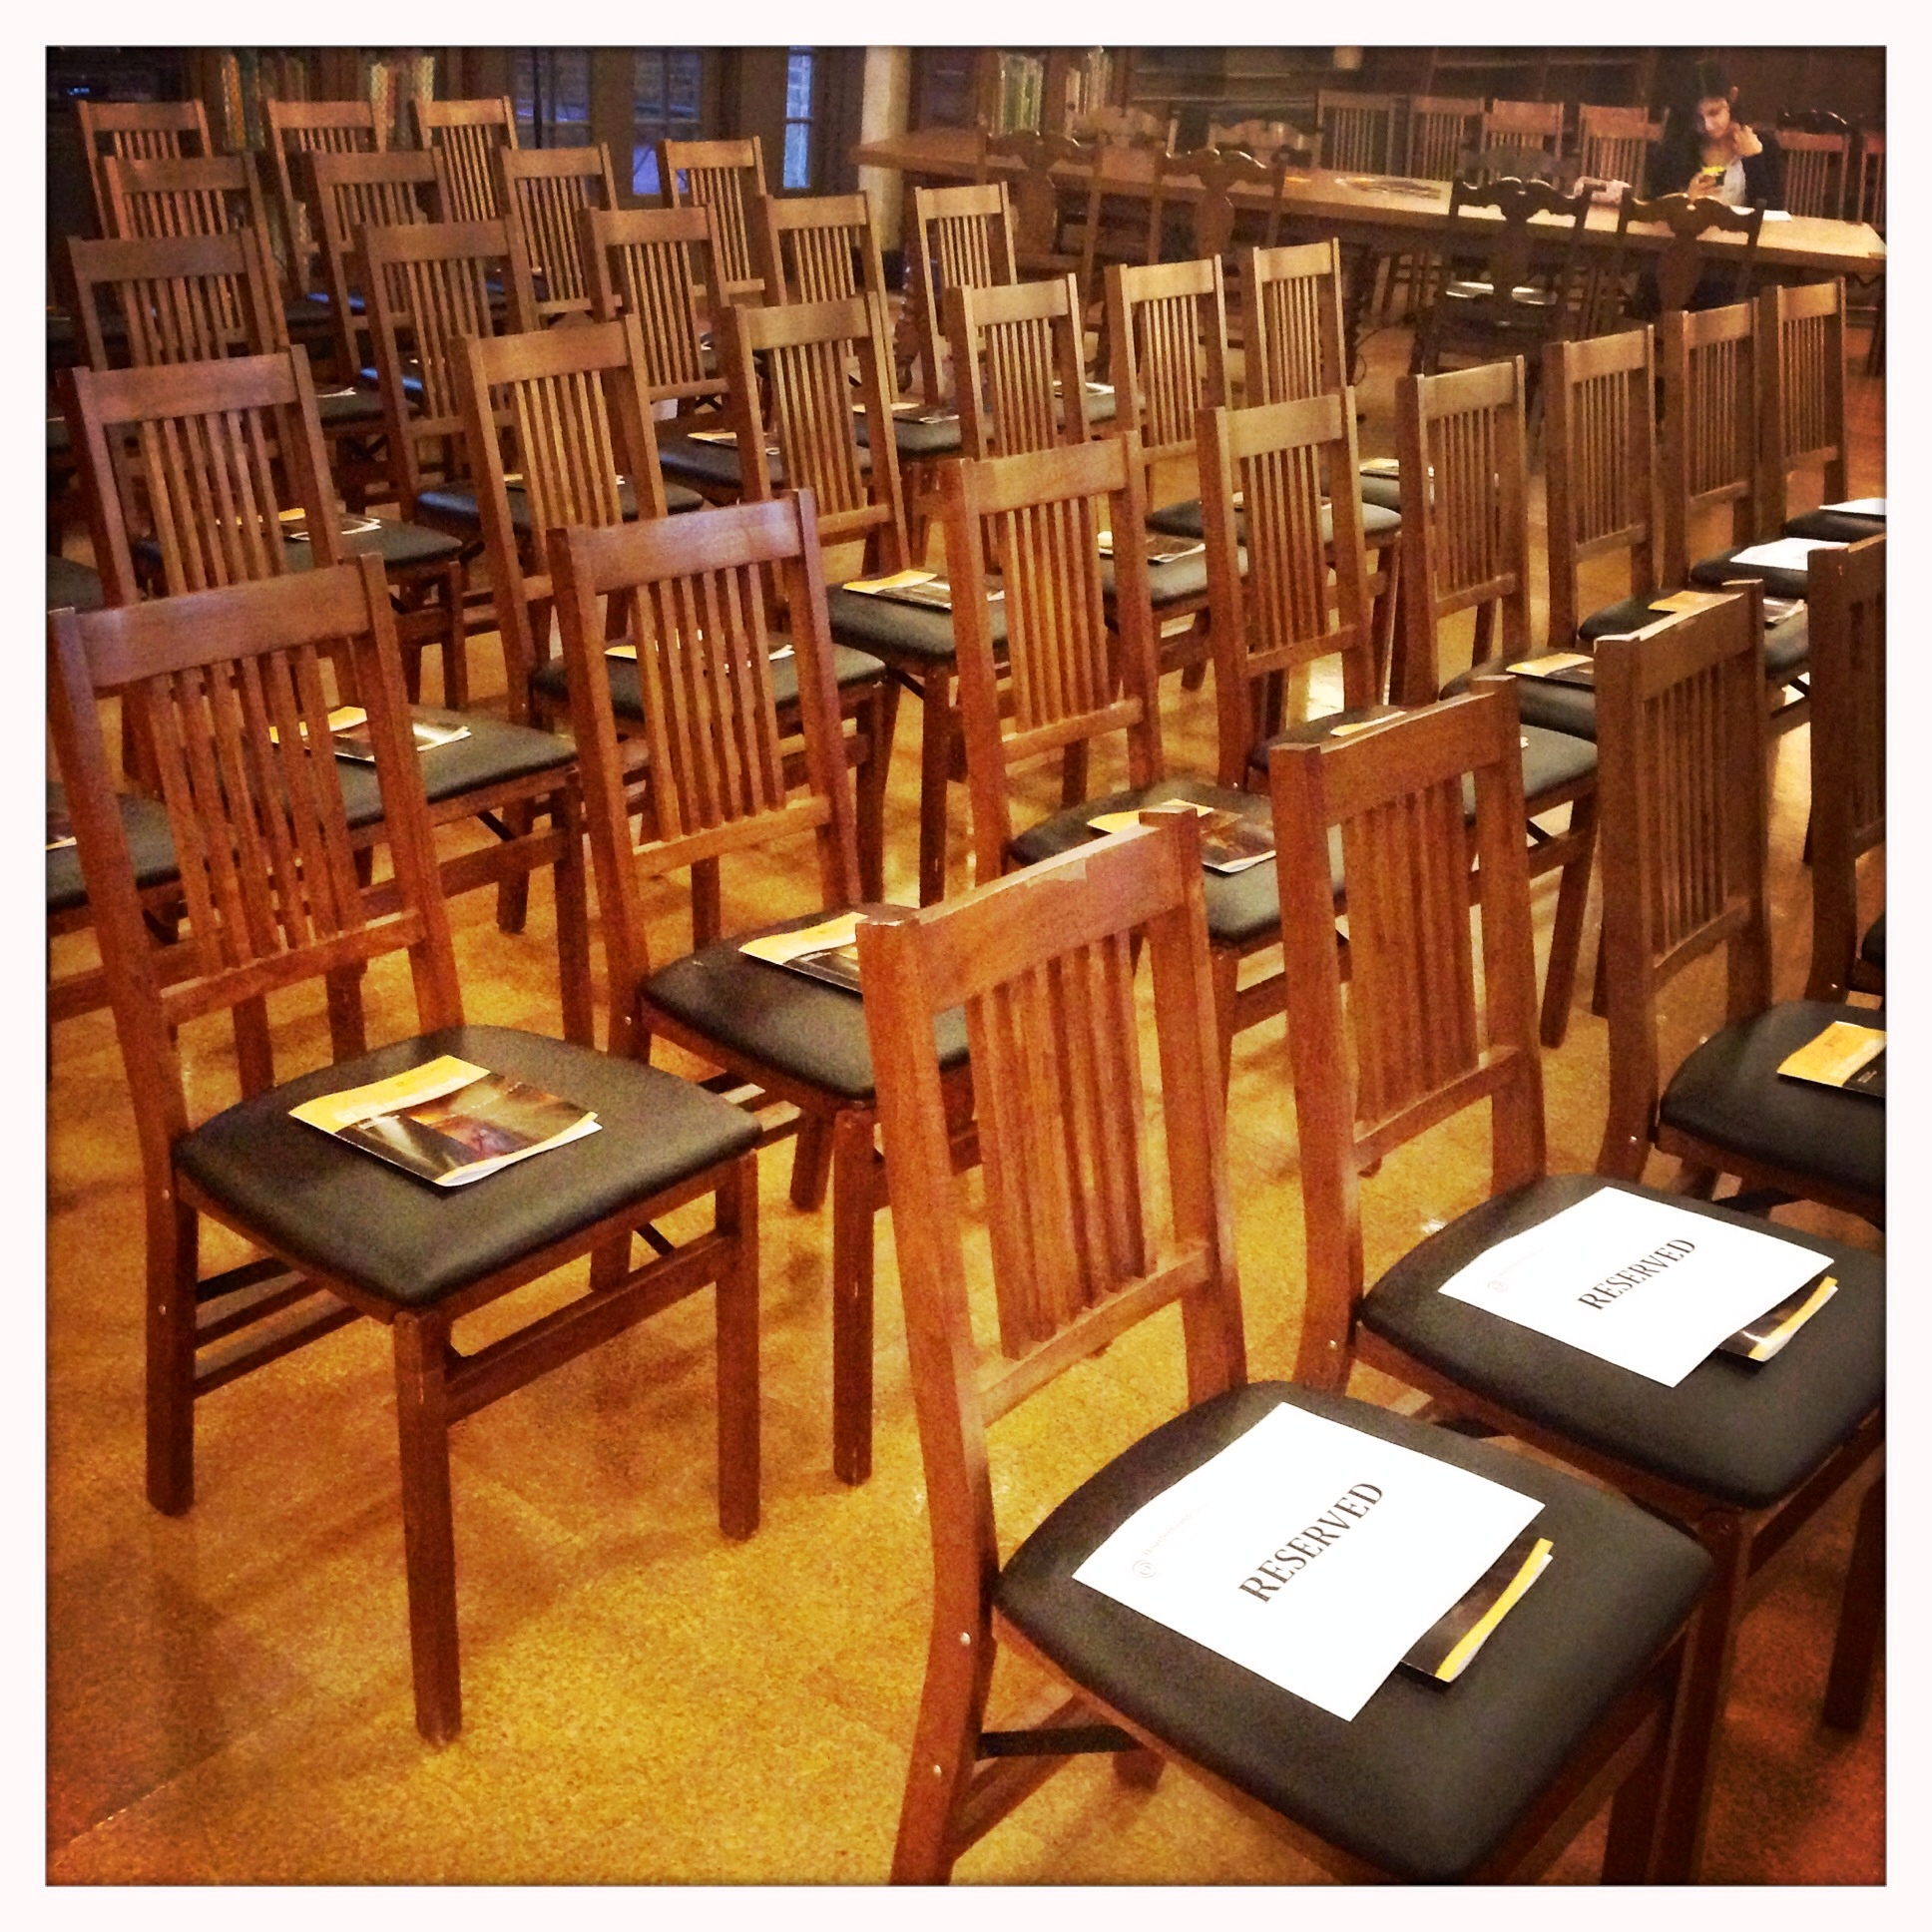 Programs (with lyrics insert) and chairs.